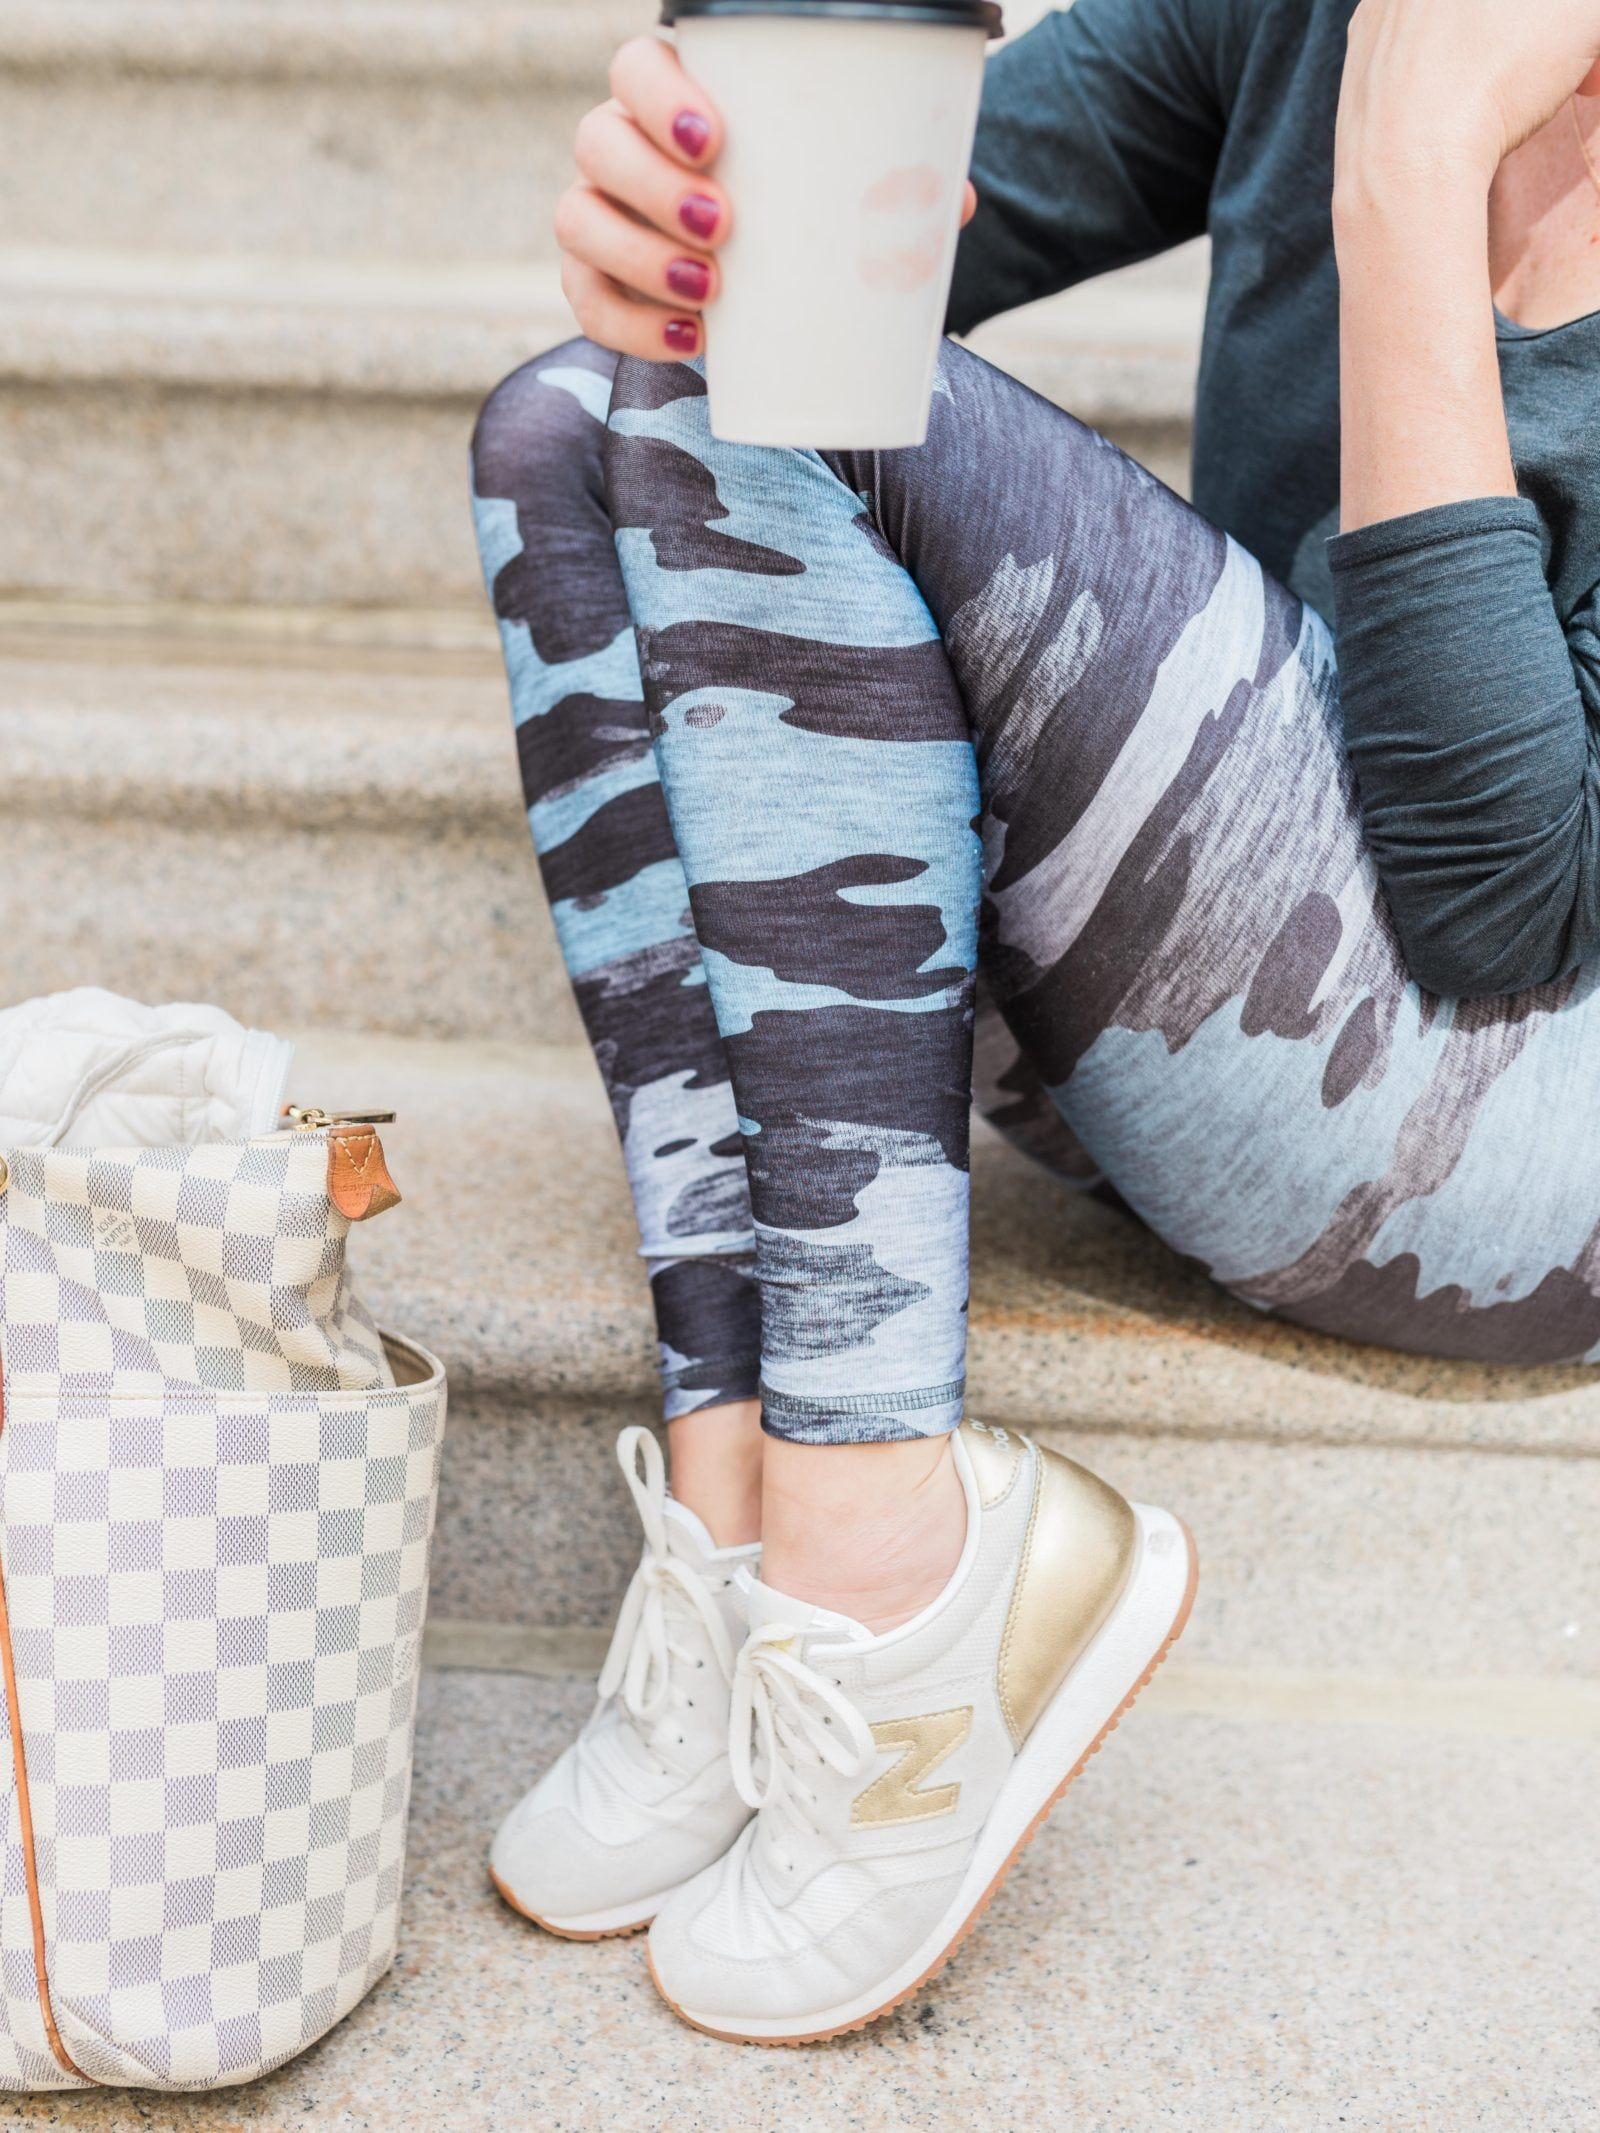 51c7be6344b89 Leggings for the Gym Only? Bah. Suck in those love handles all the ...